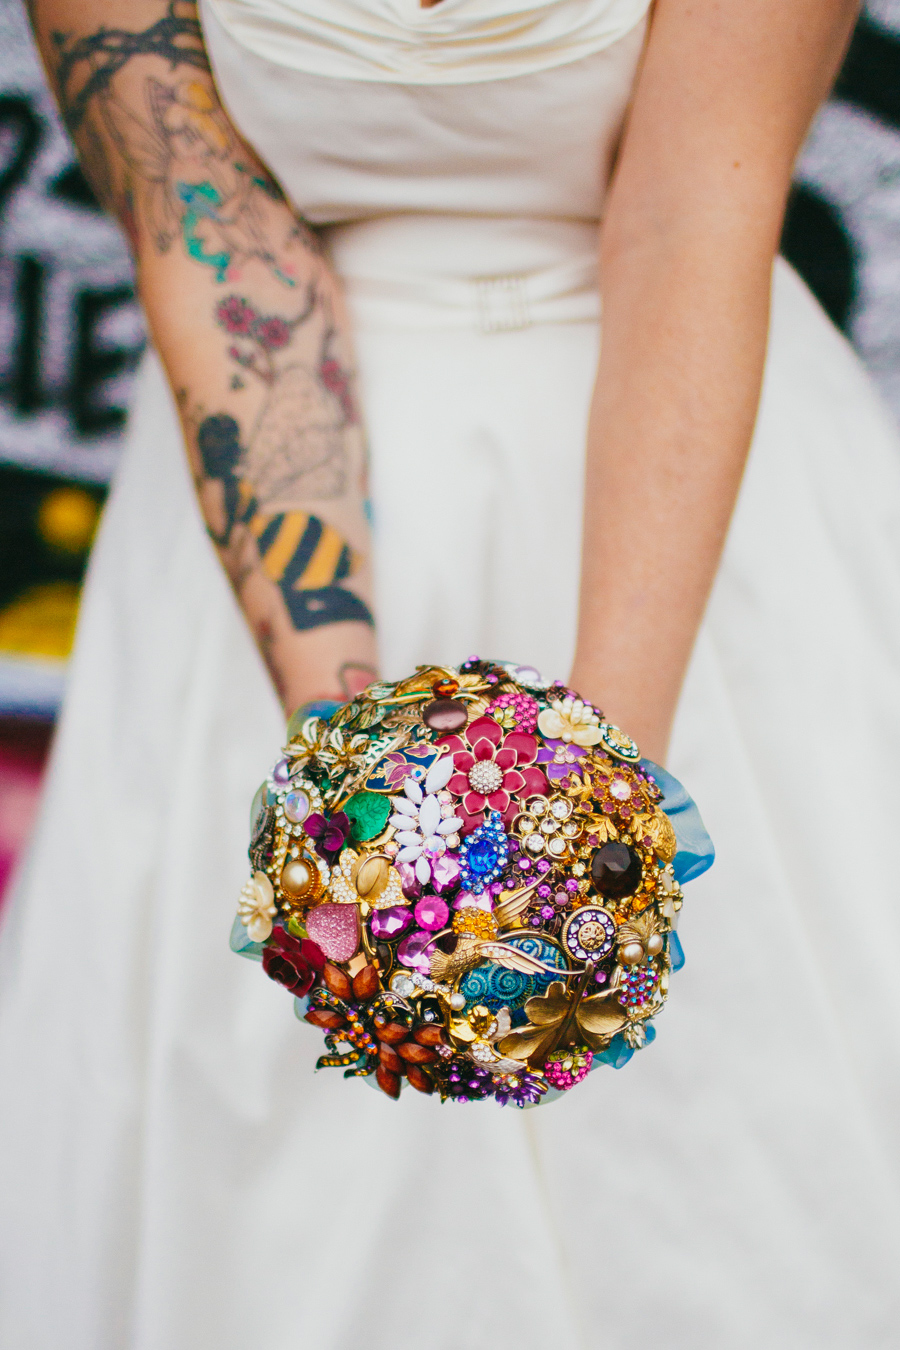 Alternative Wedding Photographer Northern Ireland, tattoo bride with brooch bouquet by aurora, tattoo sleeve, swallow brooch